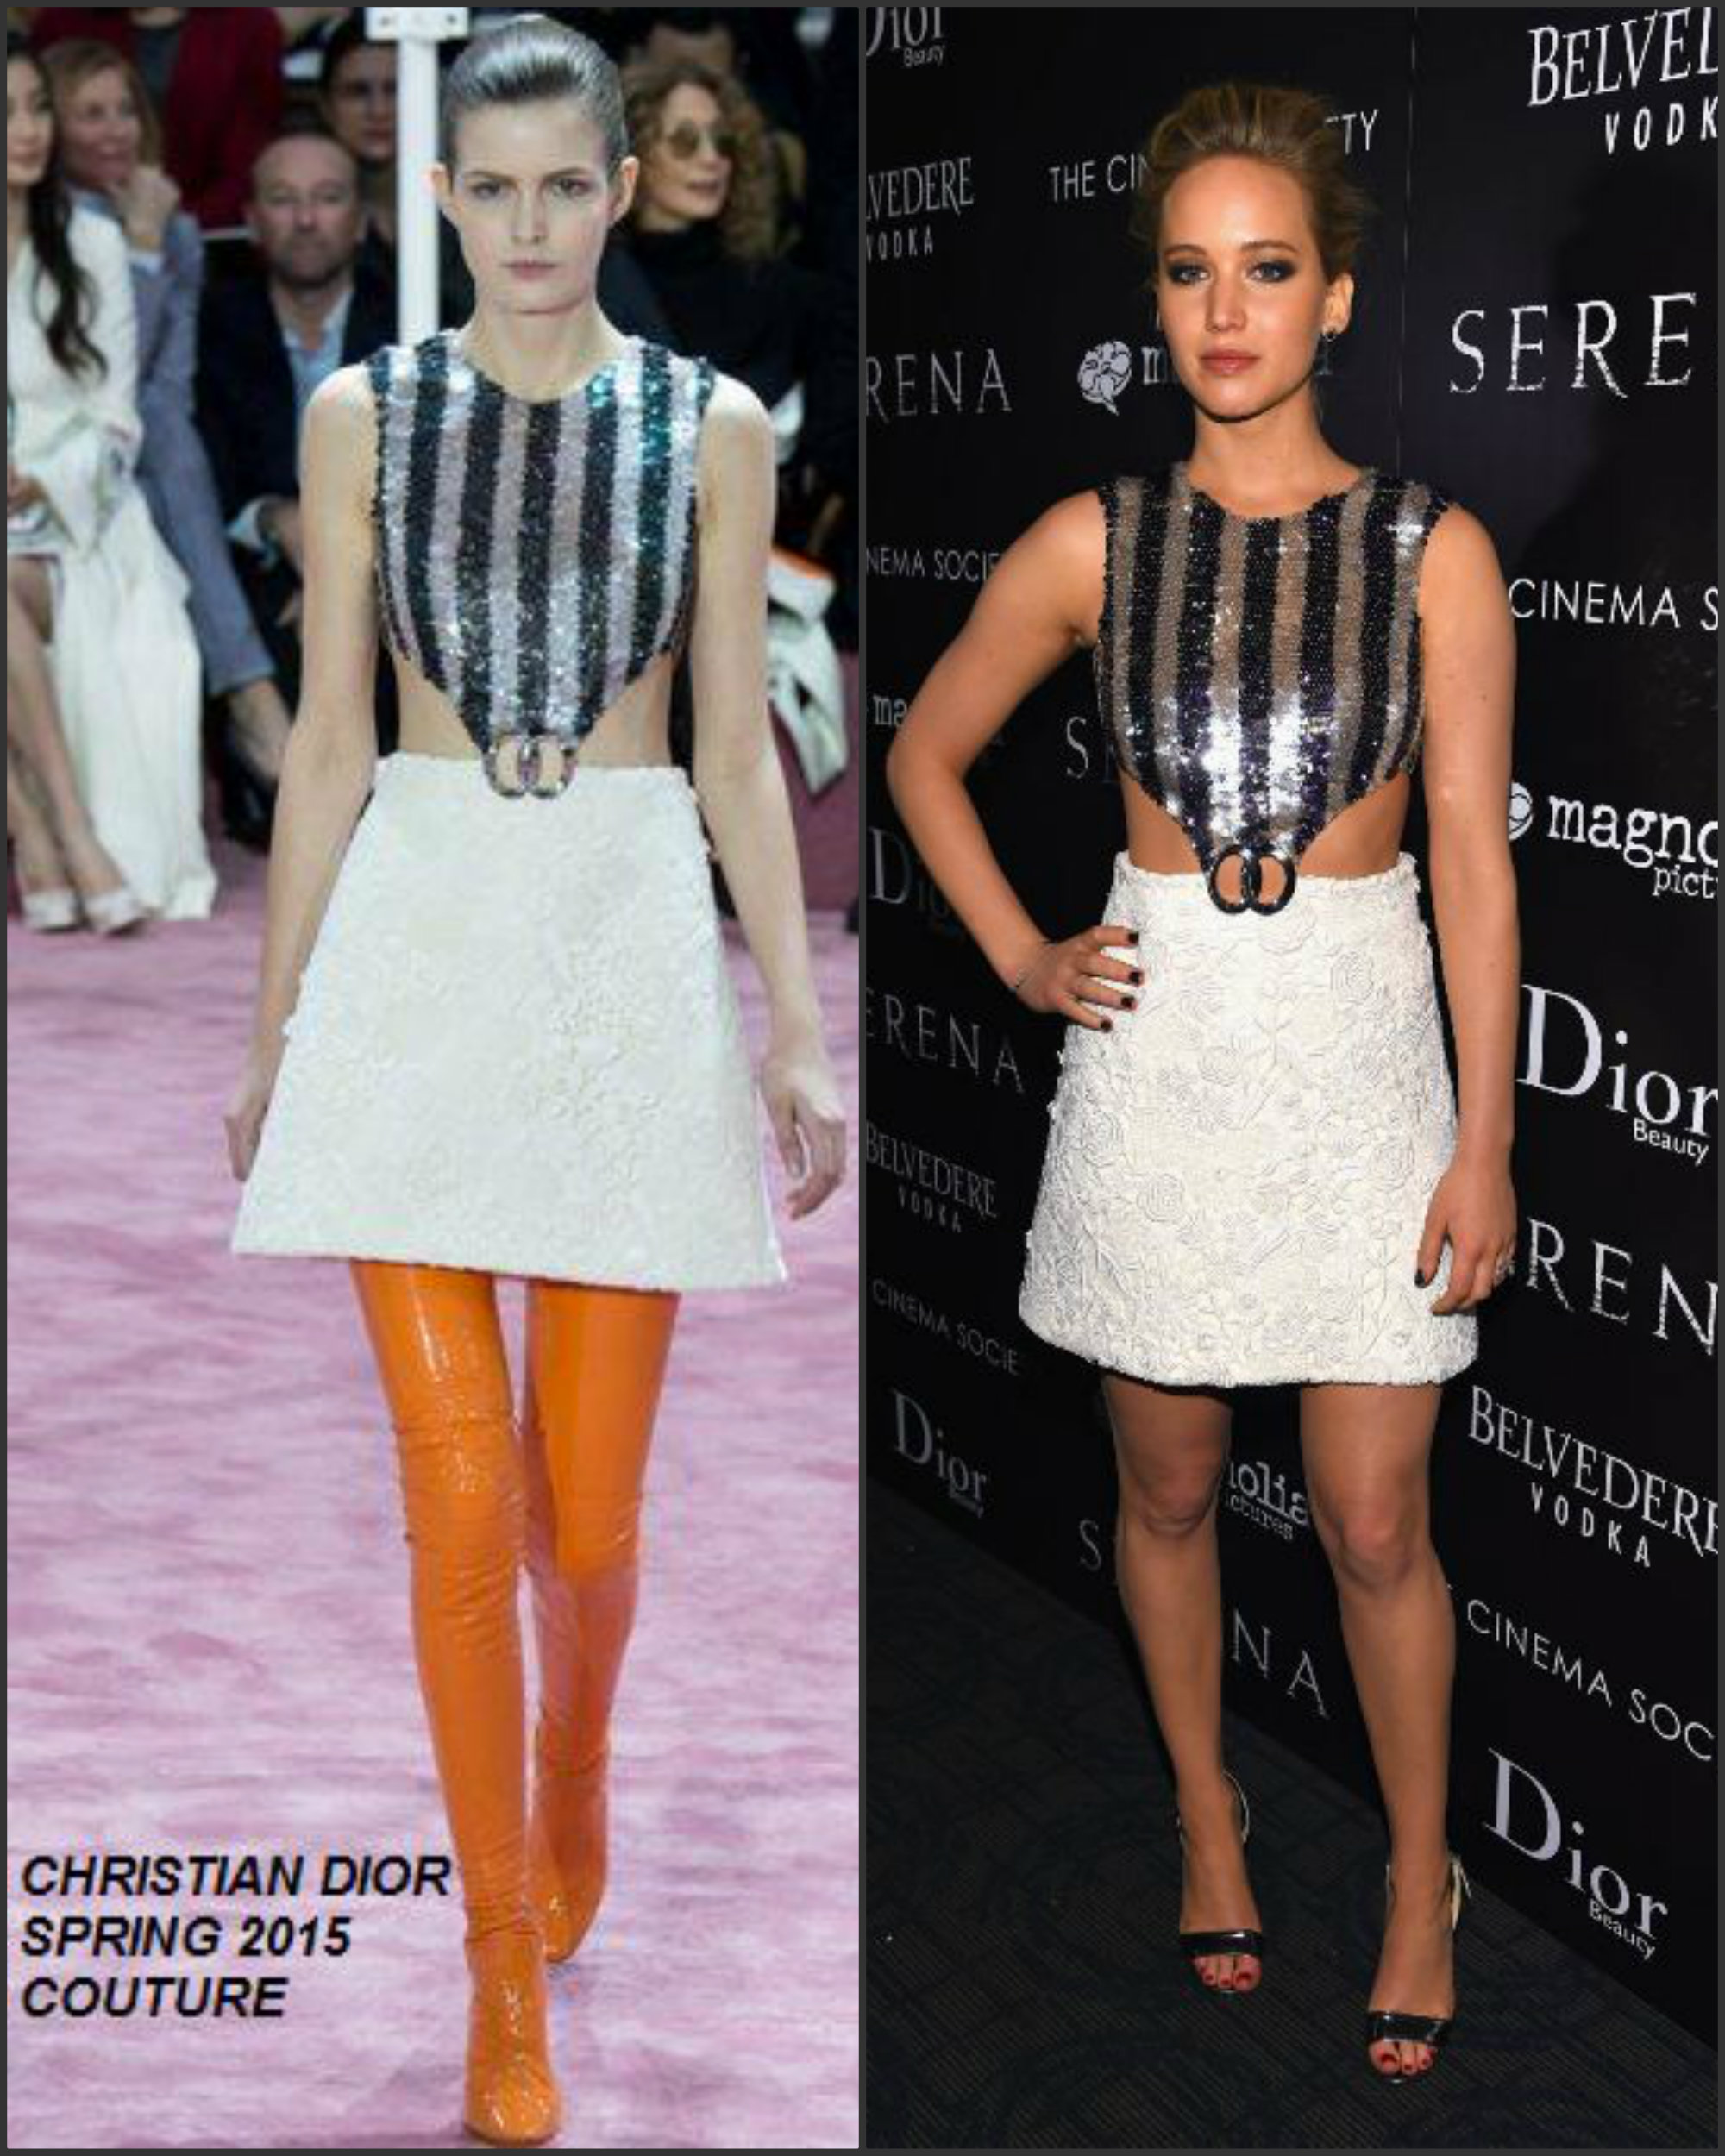 Jennifer-Lawerence-in-Christian-Dior-Couture-at-the-Serena-Screening